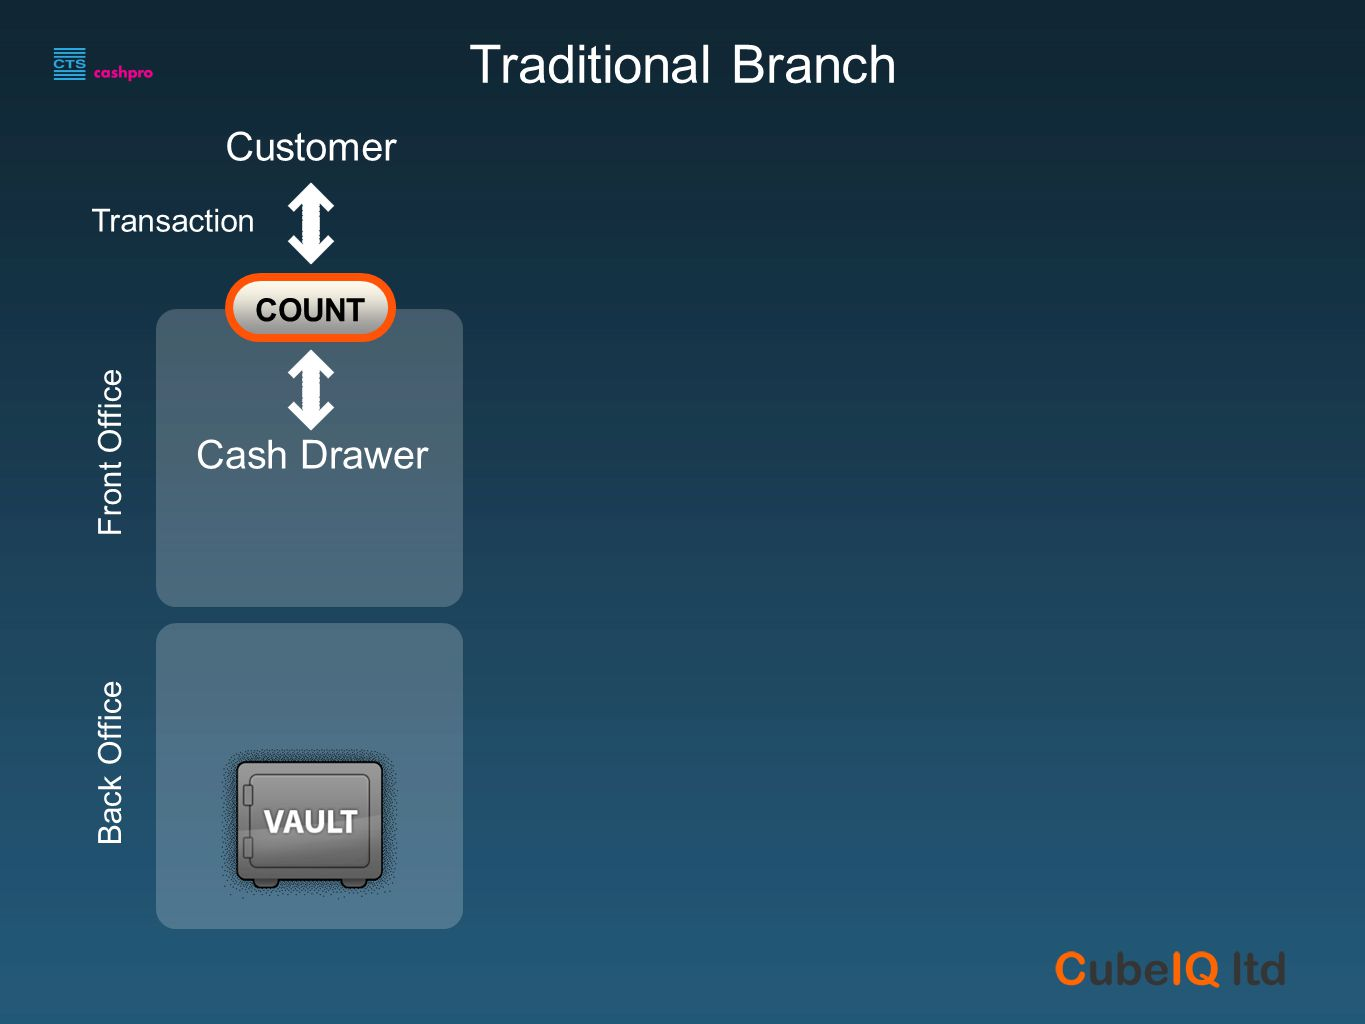 Customer Cash Drawer Front Office Back Office Transaction COUNT Traditional Branch